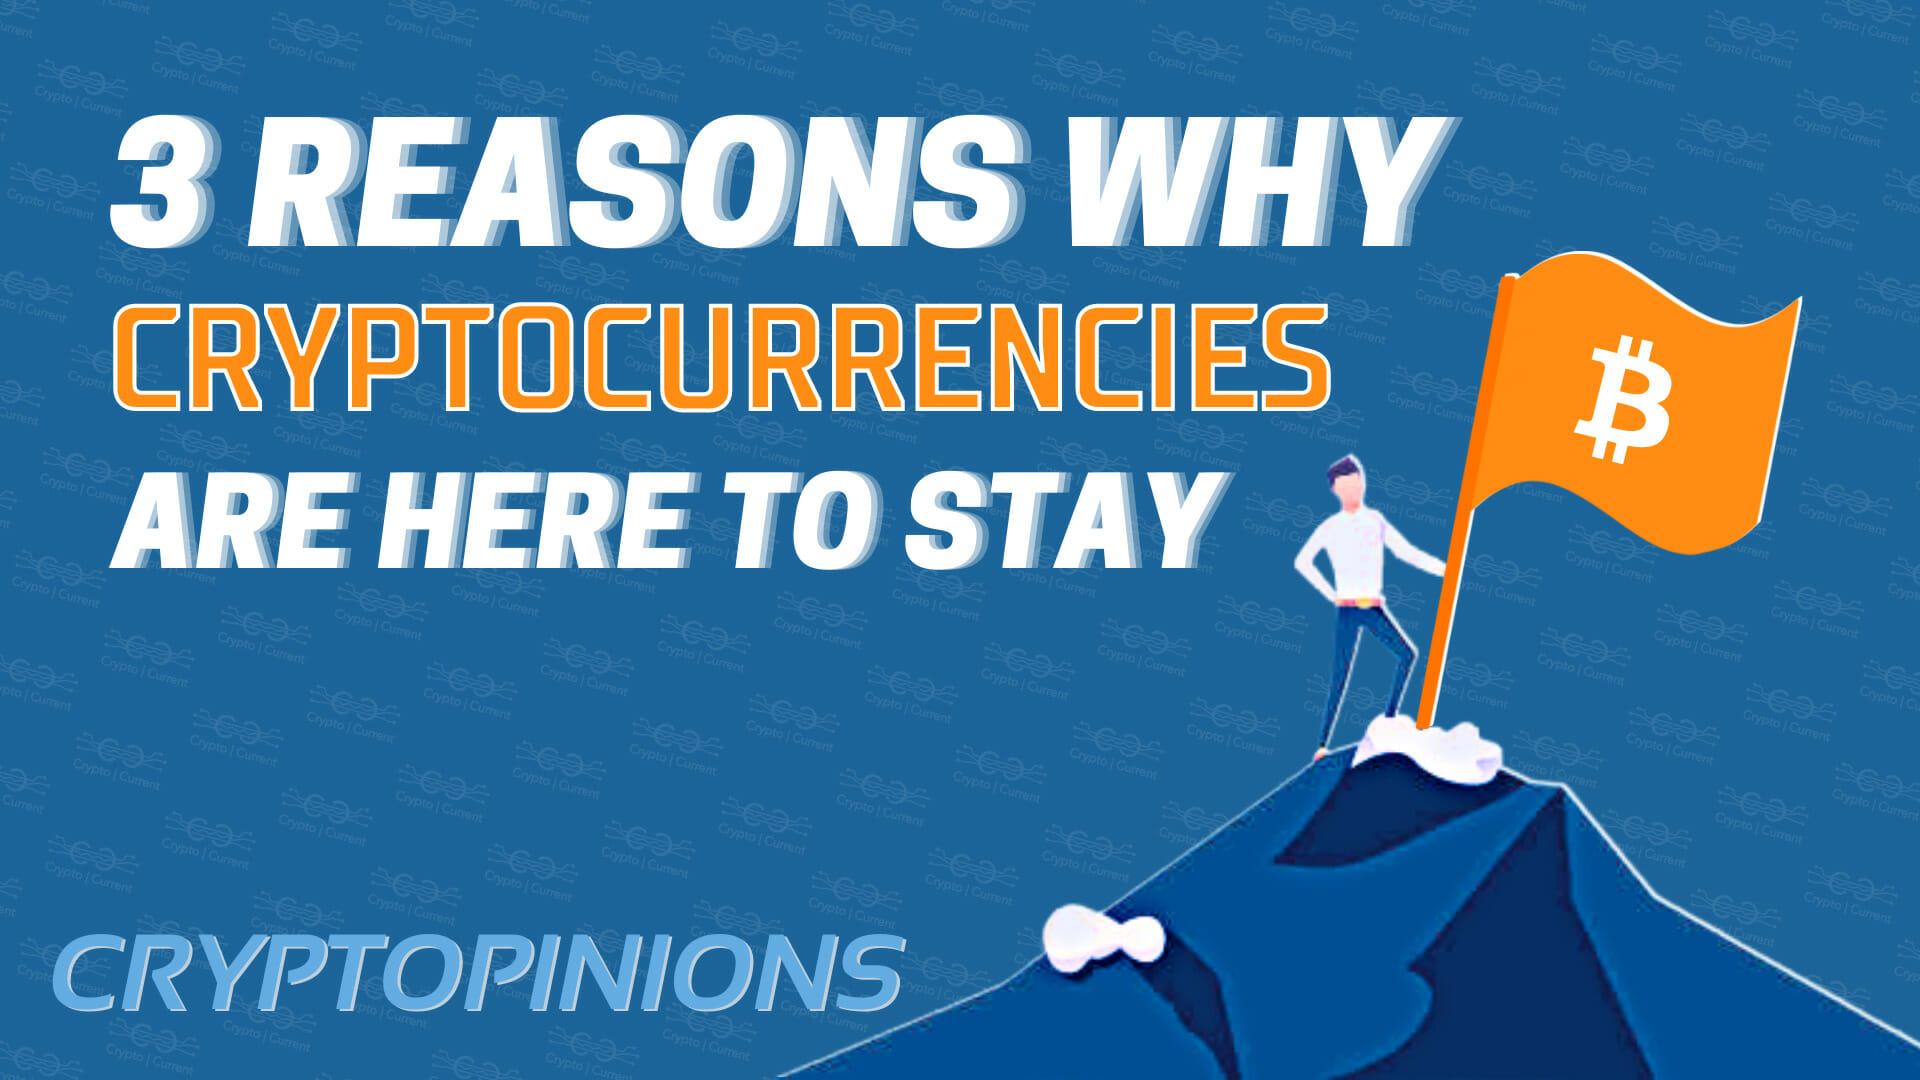 3 Reasons Why Cryptocurrencies are Here to Stay